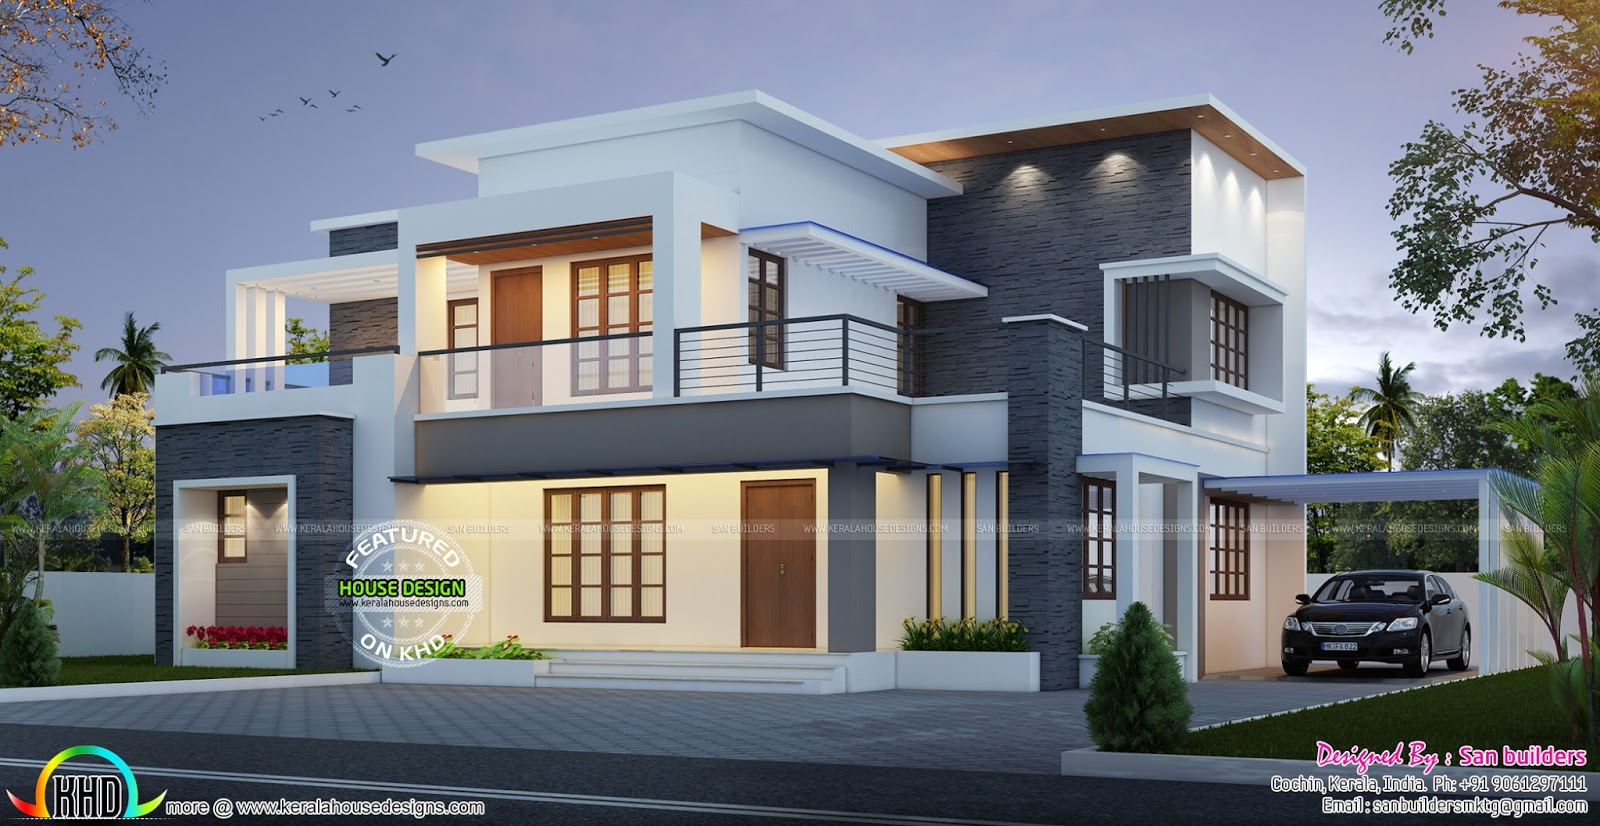 First Floor Elevation Designs : House plan and elevation by san builders kerala home